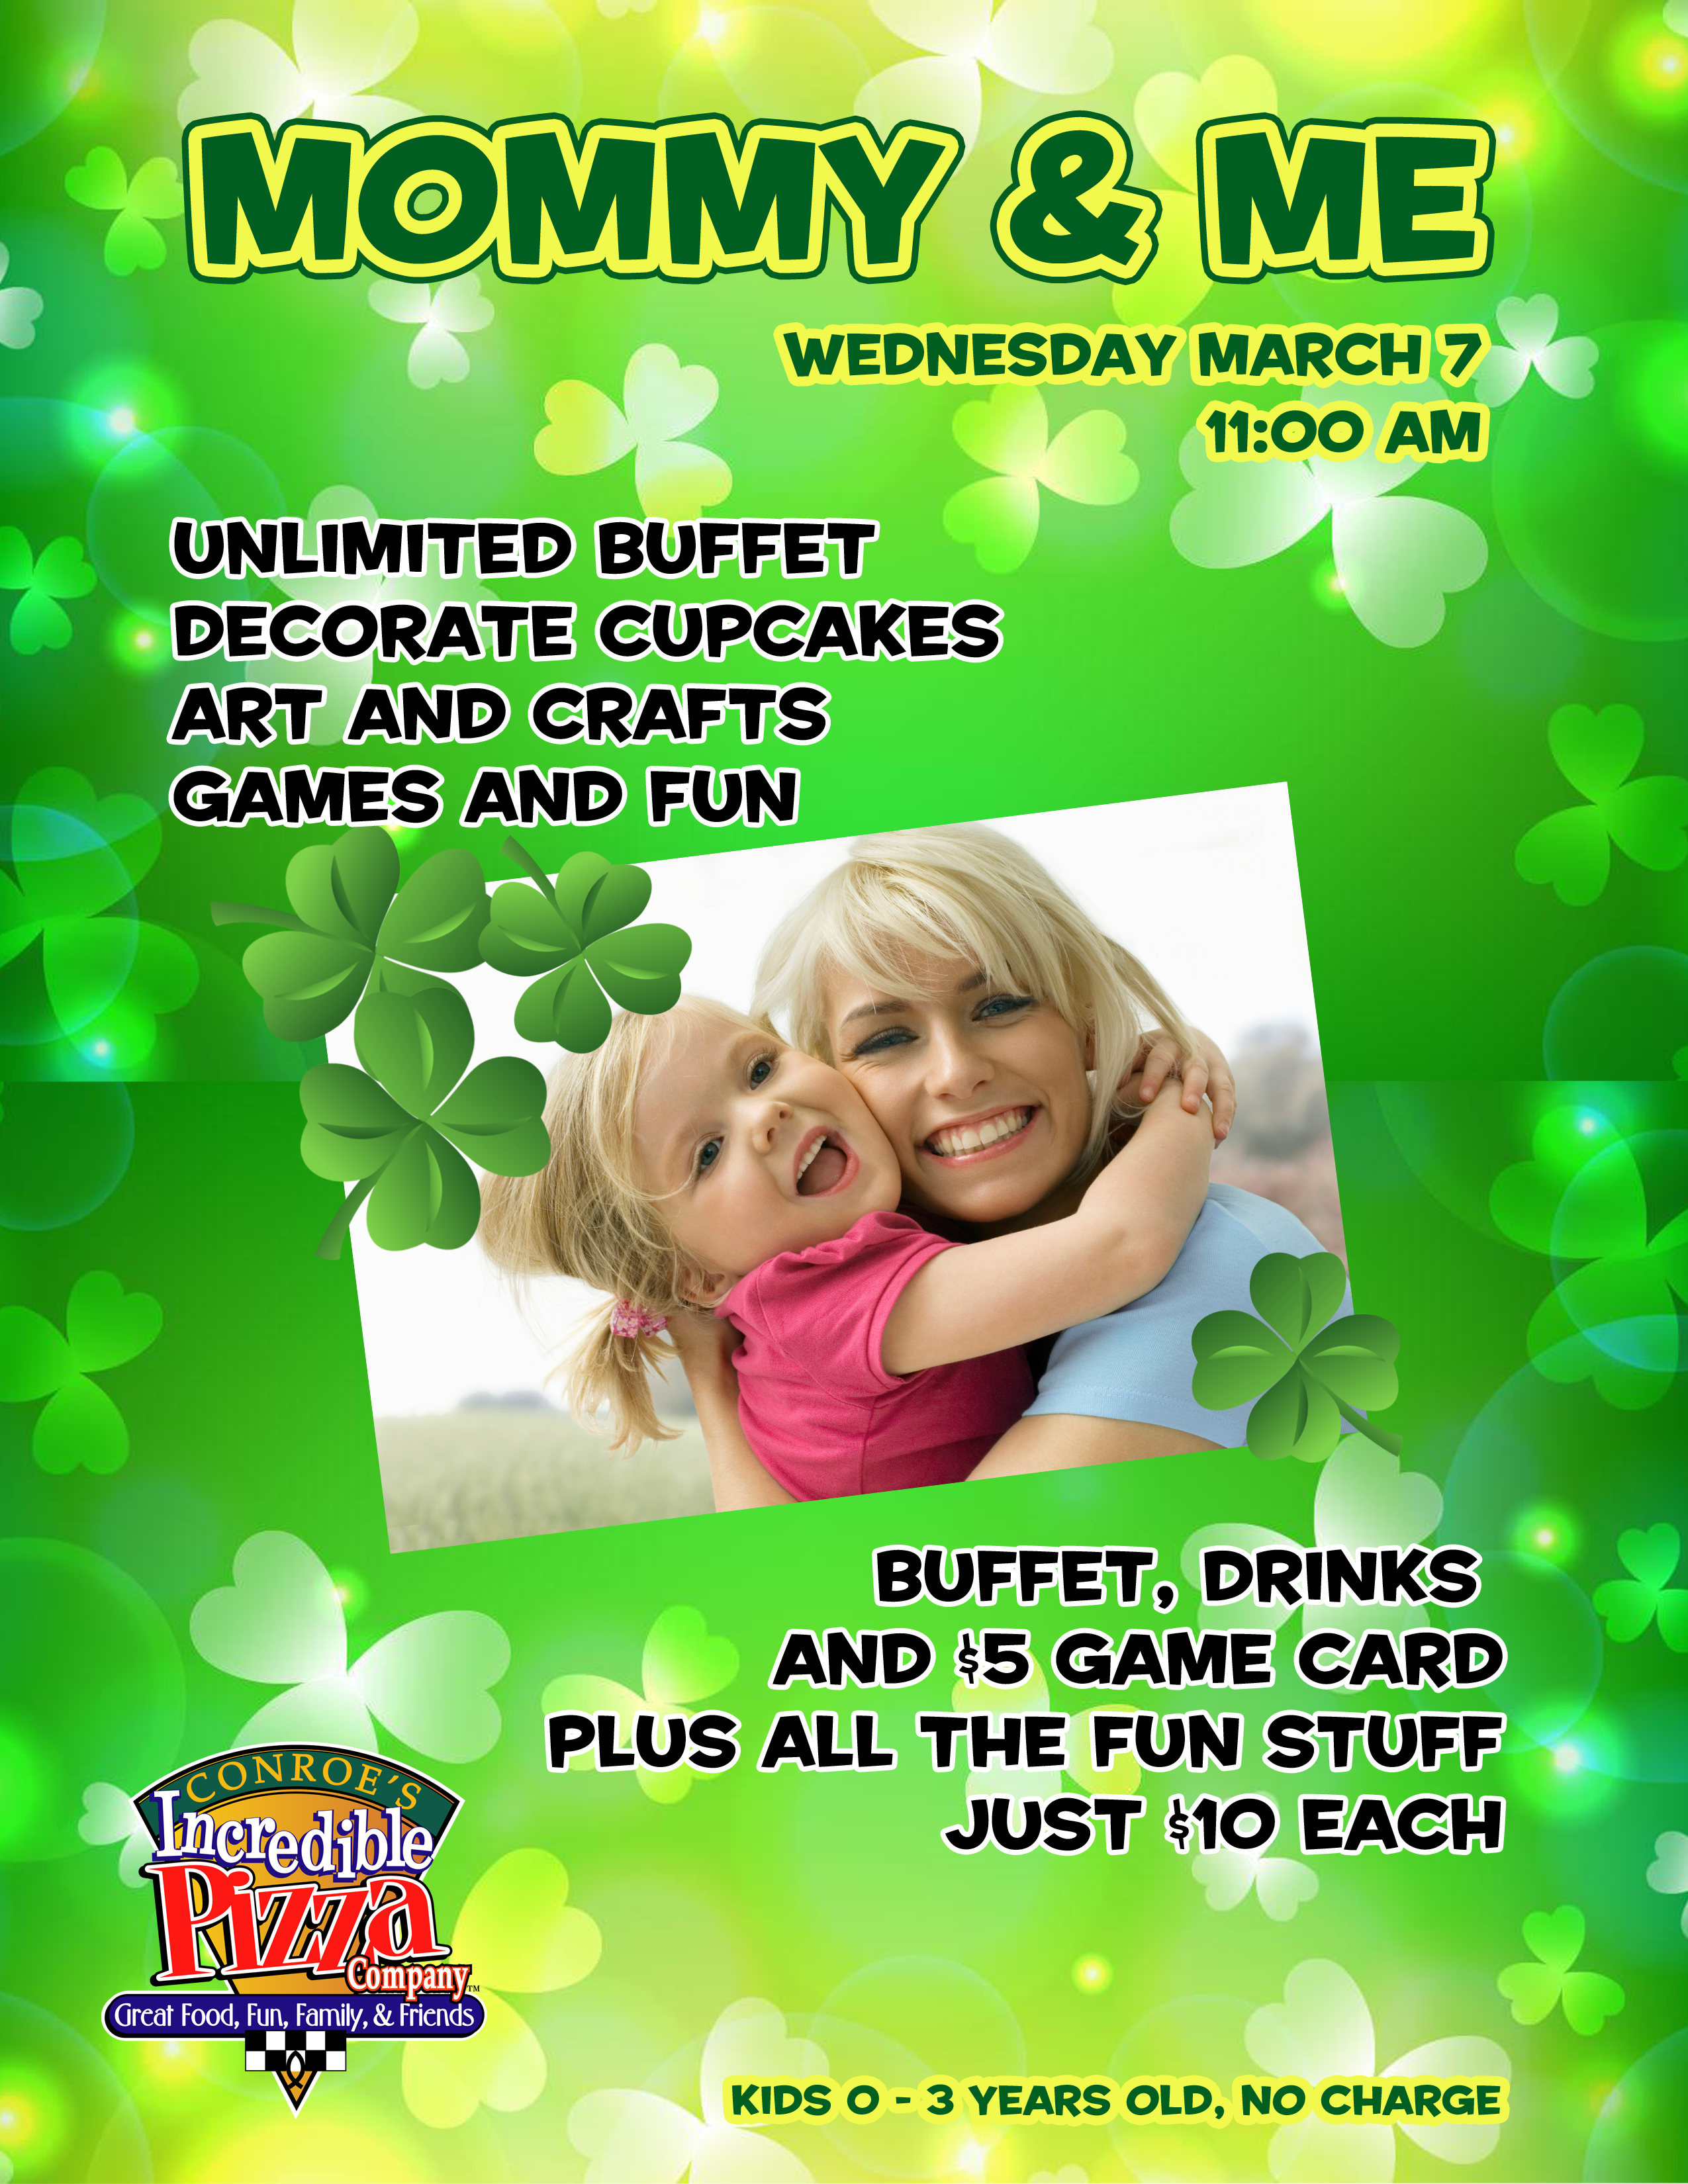 March Mommy & Me – Wed., Mar. 7